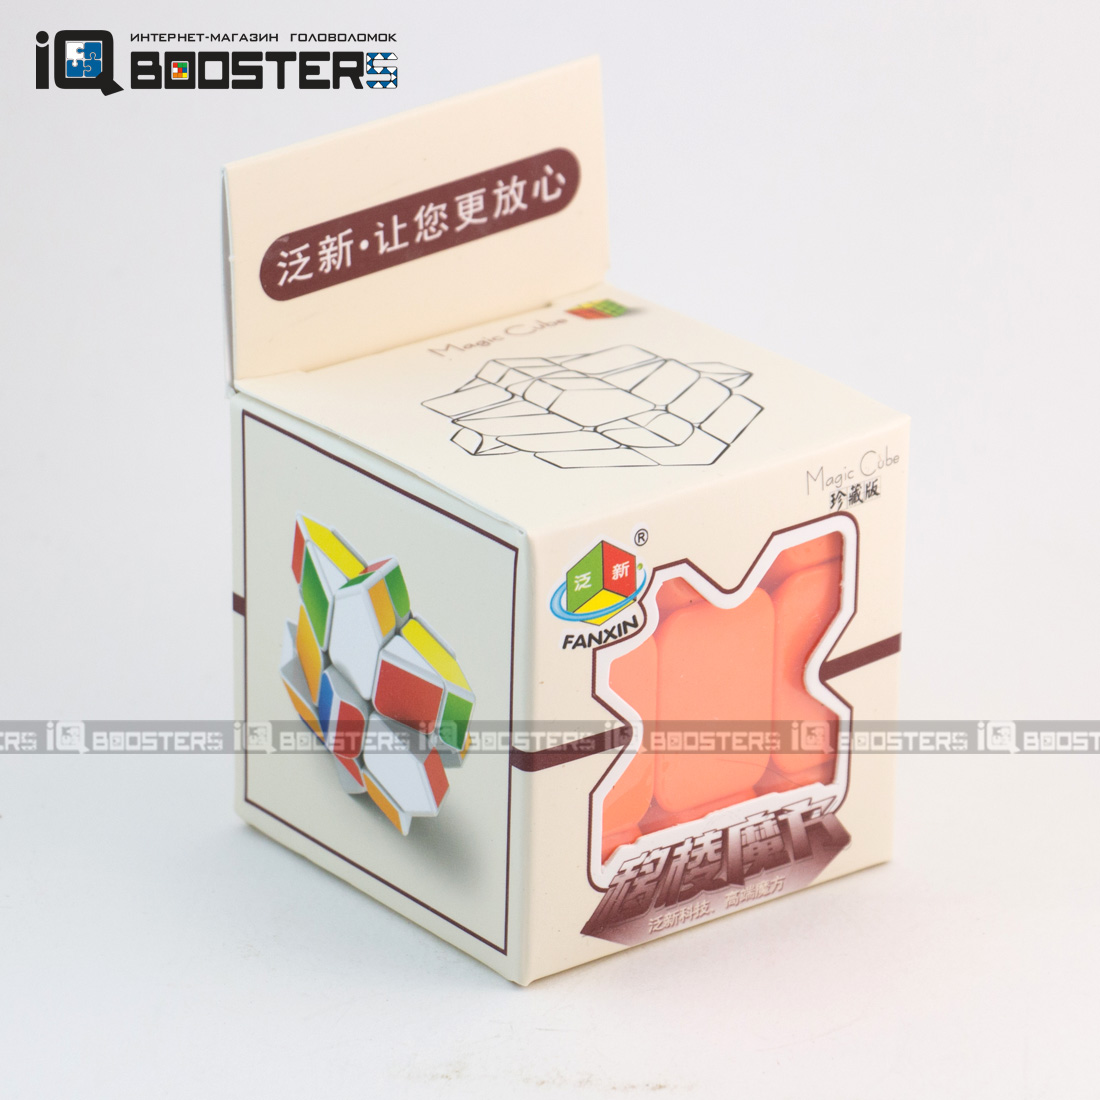 fanxin_fisher_cube_6